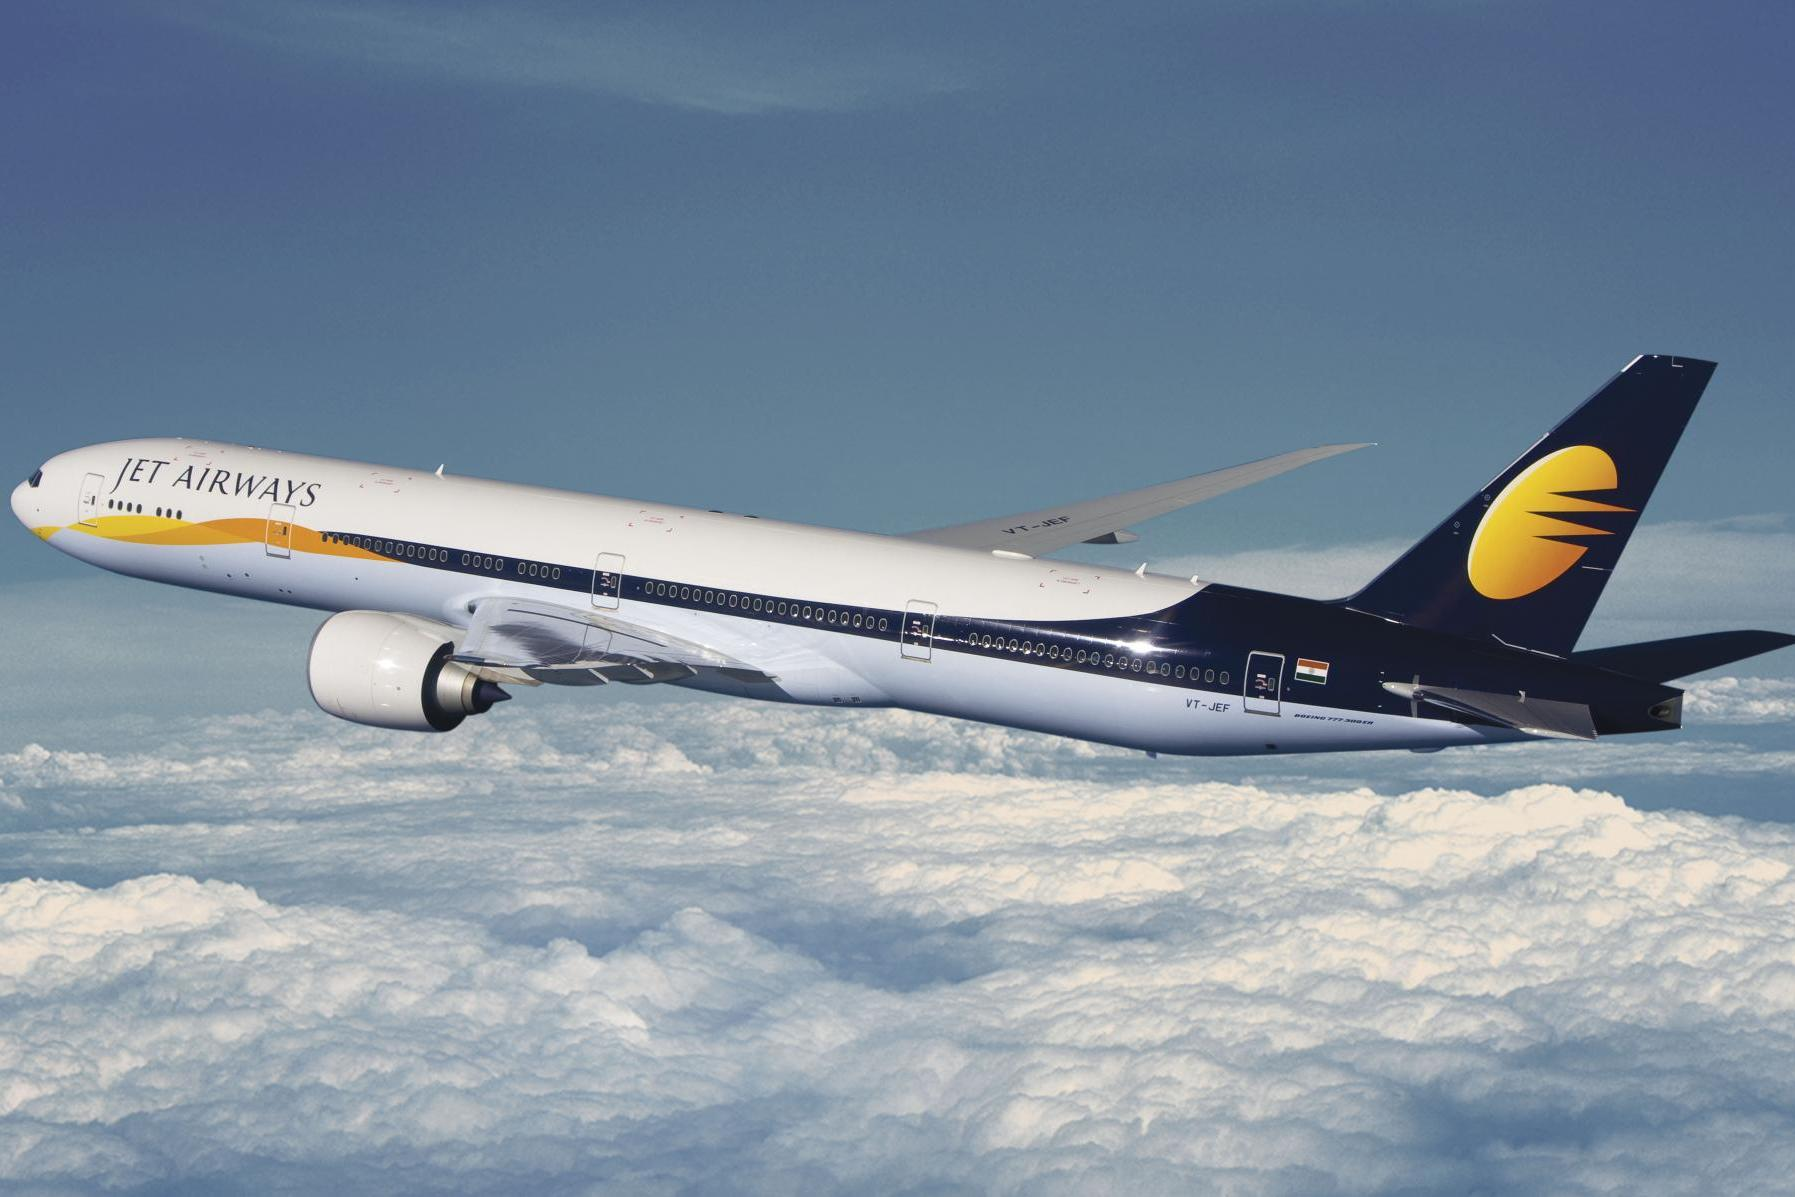 Jet Airways: Flights cancelled with Indian carrier on brink